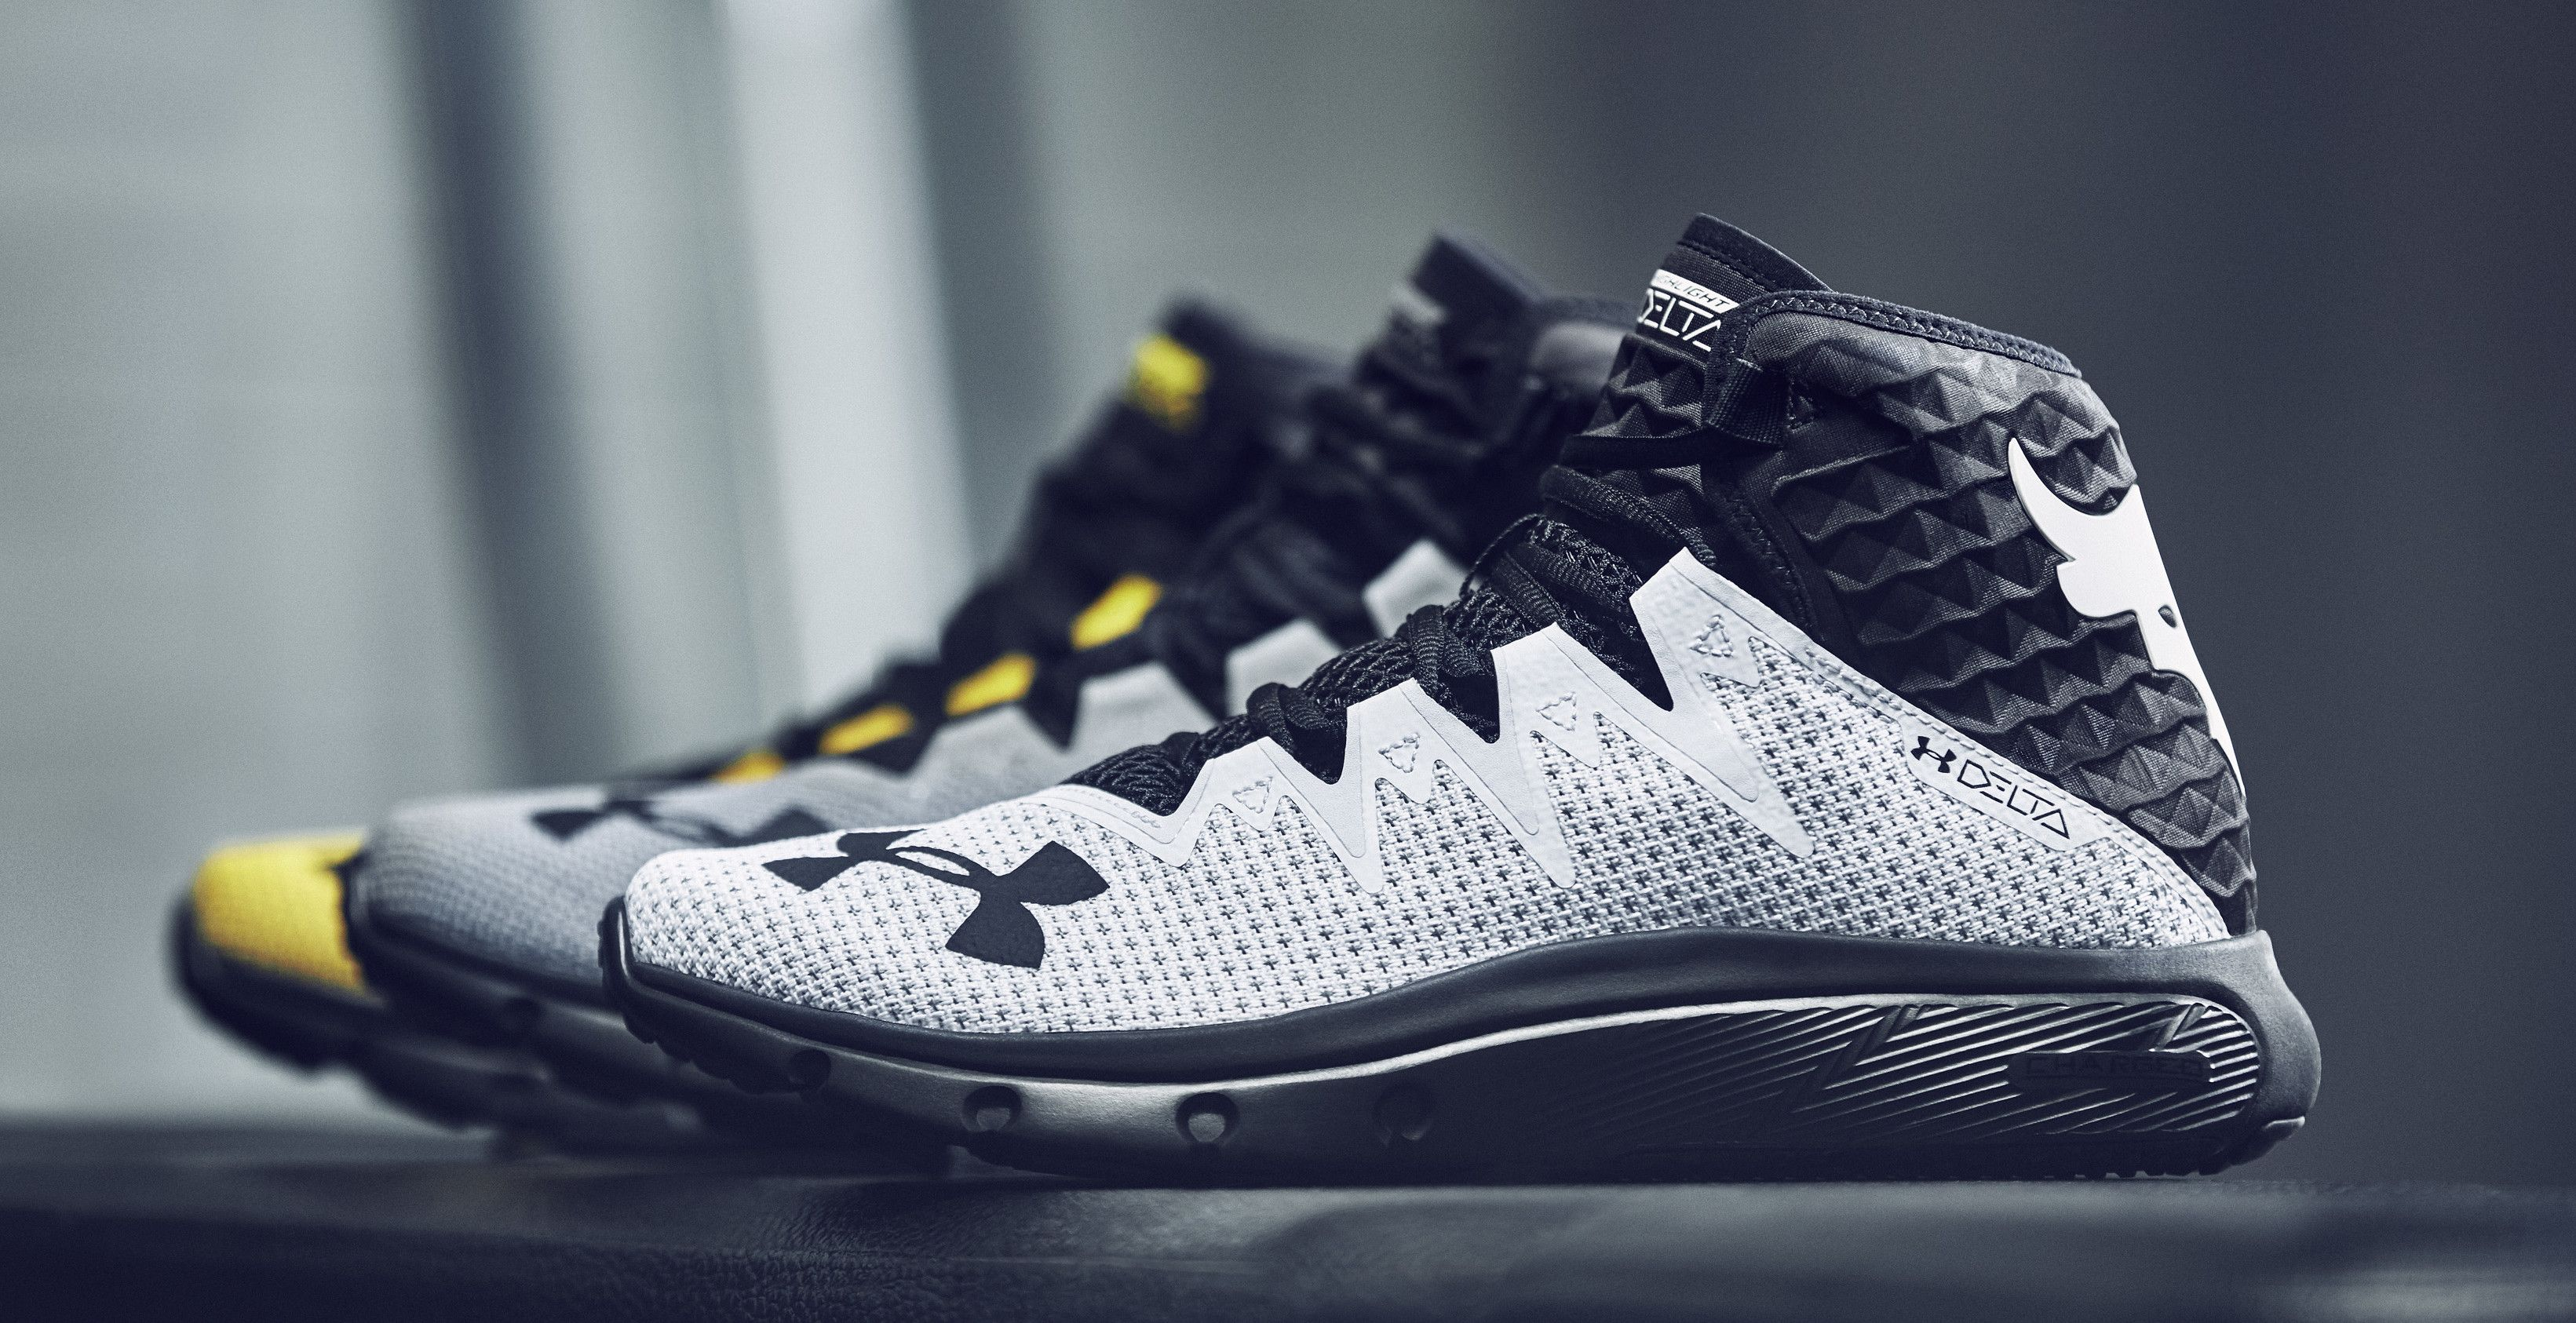 Sneakers, New under armour shoes